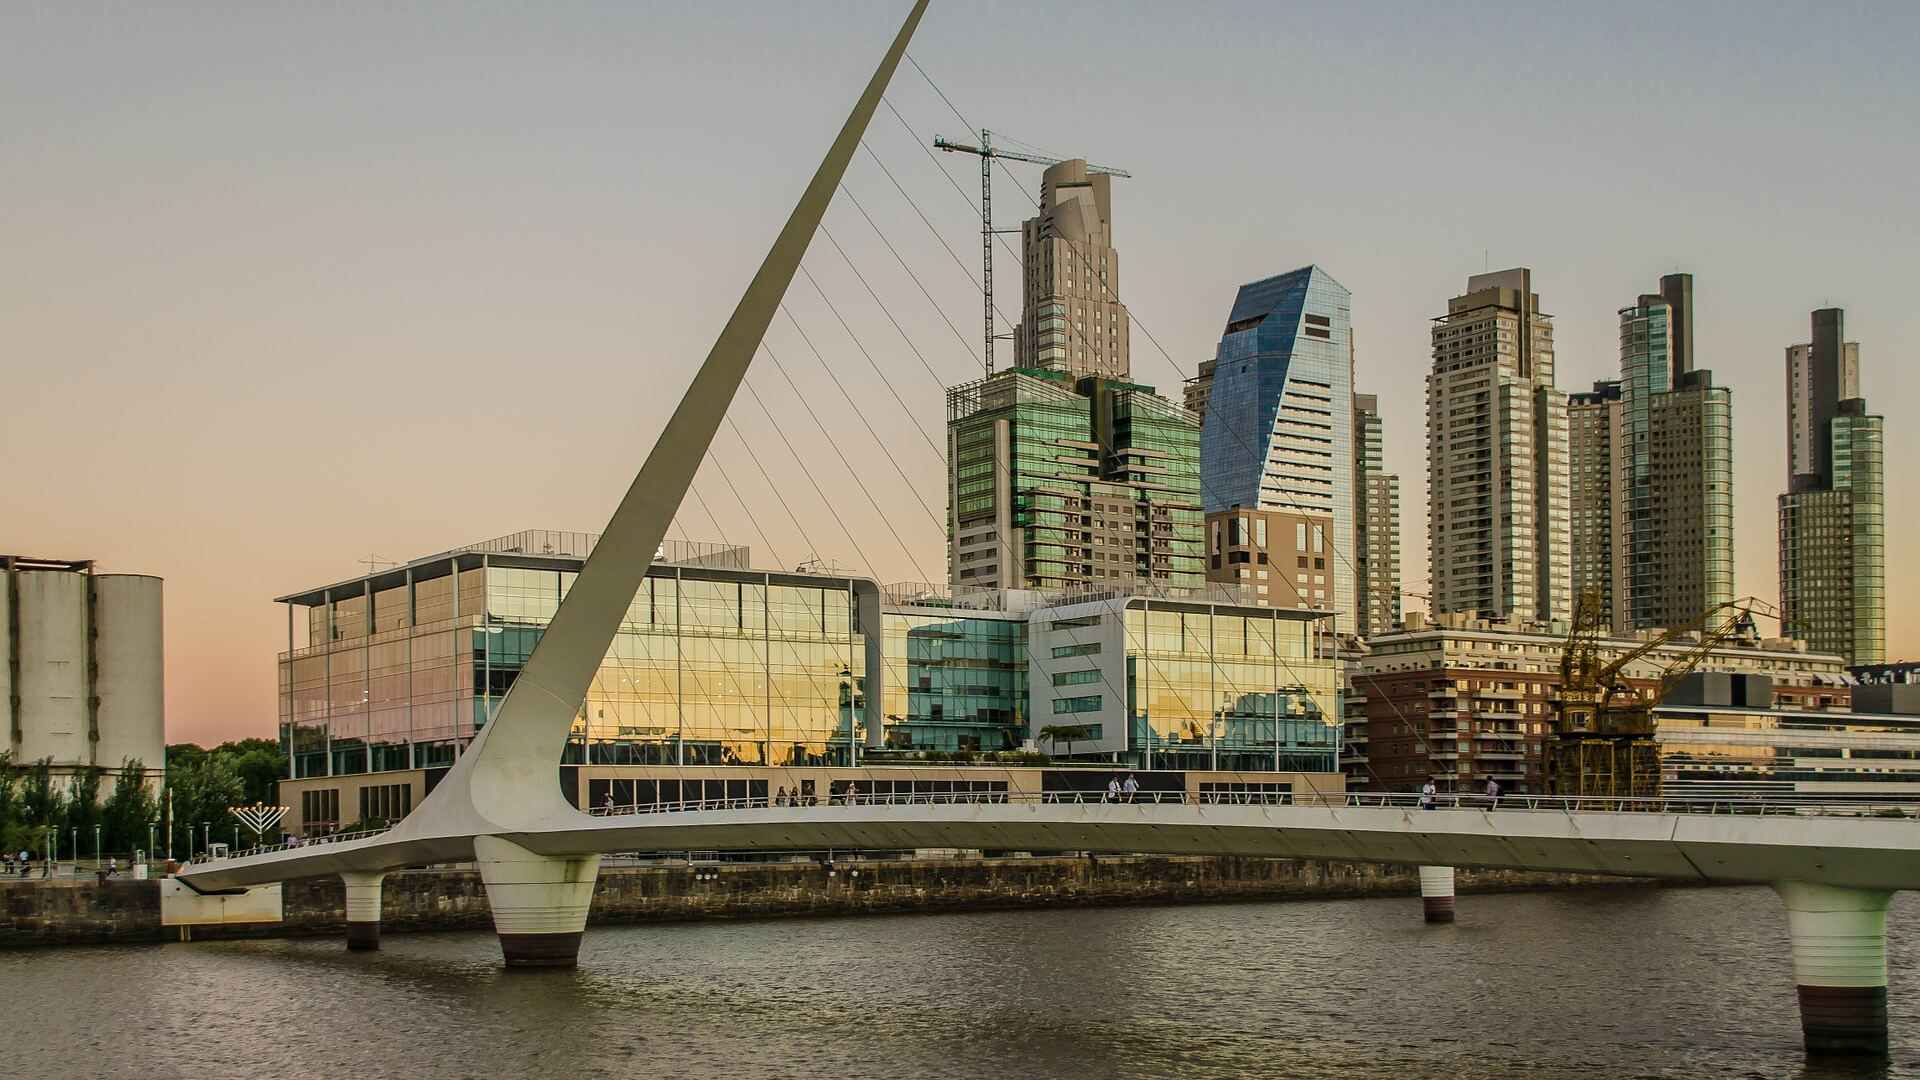 New Business Opportunities in Argentina as Economy Opens to Foreign Investment